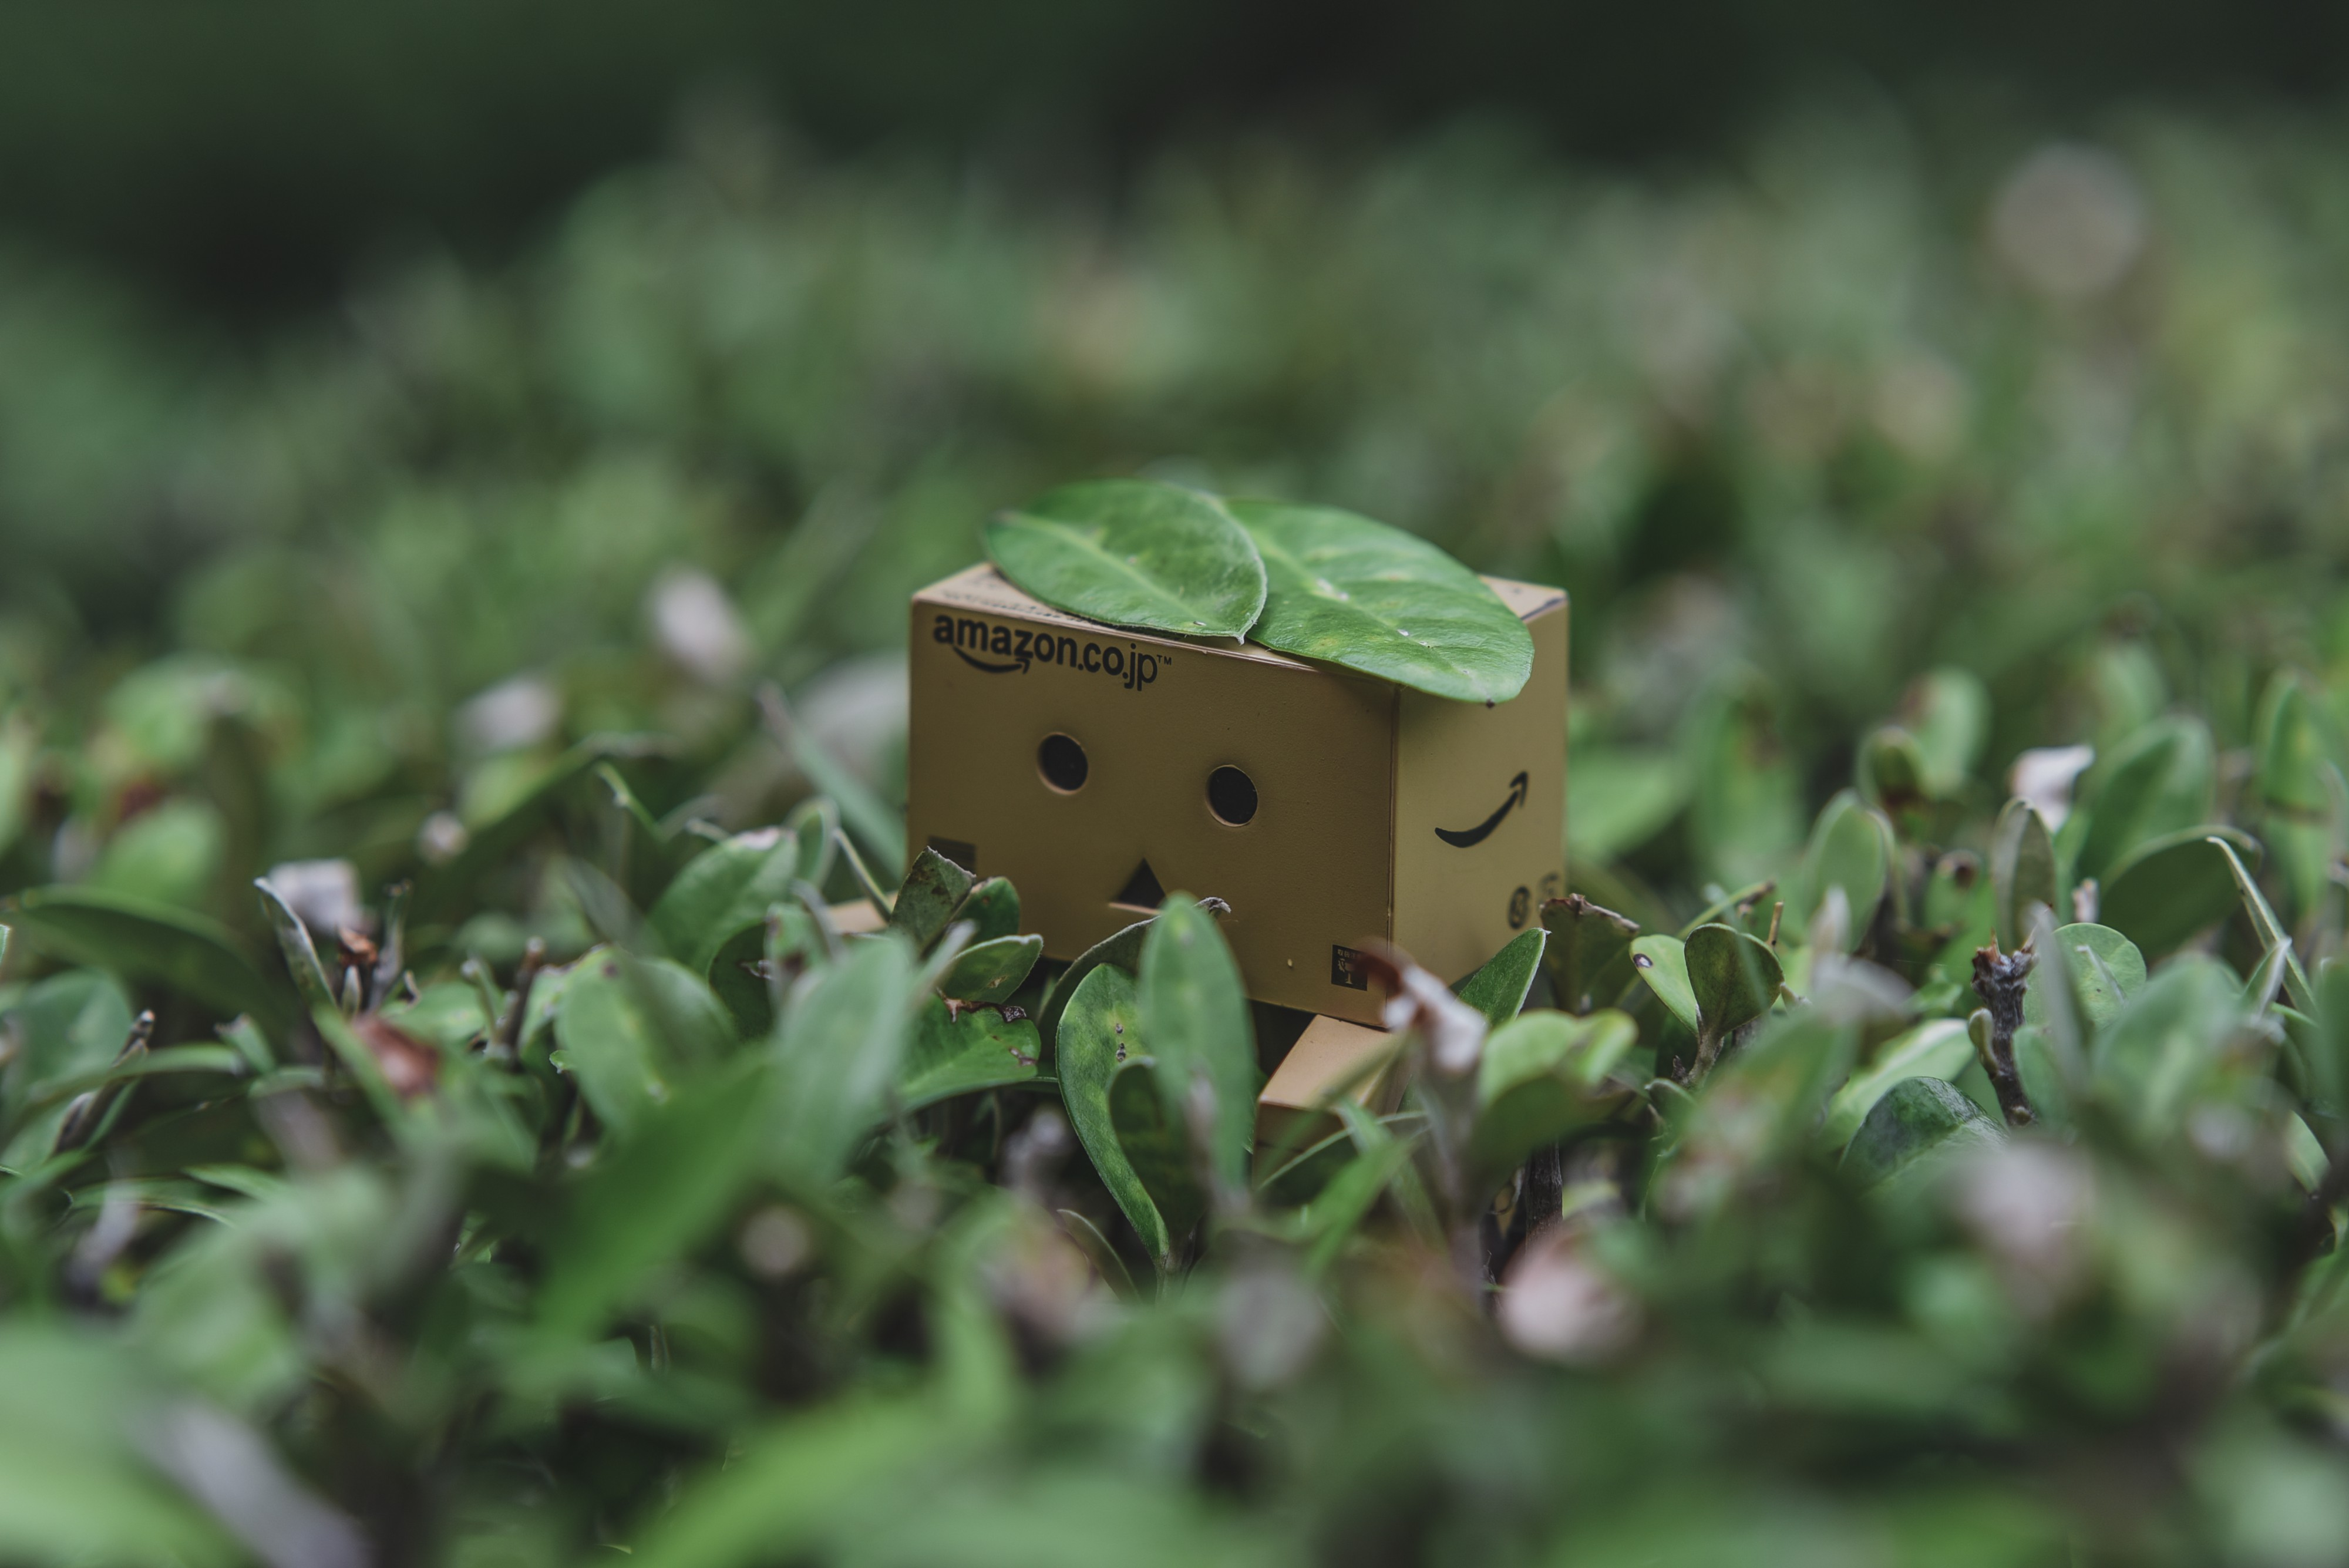 A small cardboard cut-out, with Amazon sign on the front and logo on the side, in the middle of a green meadow with one little green leaf sitting on top of it.